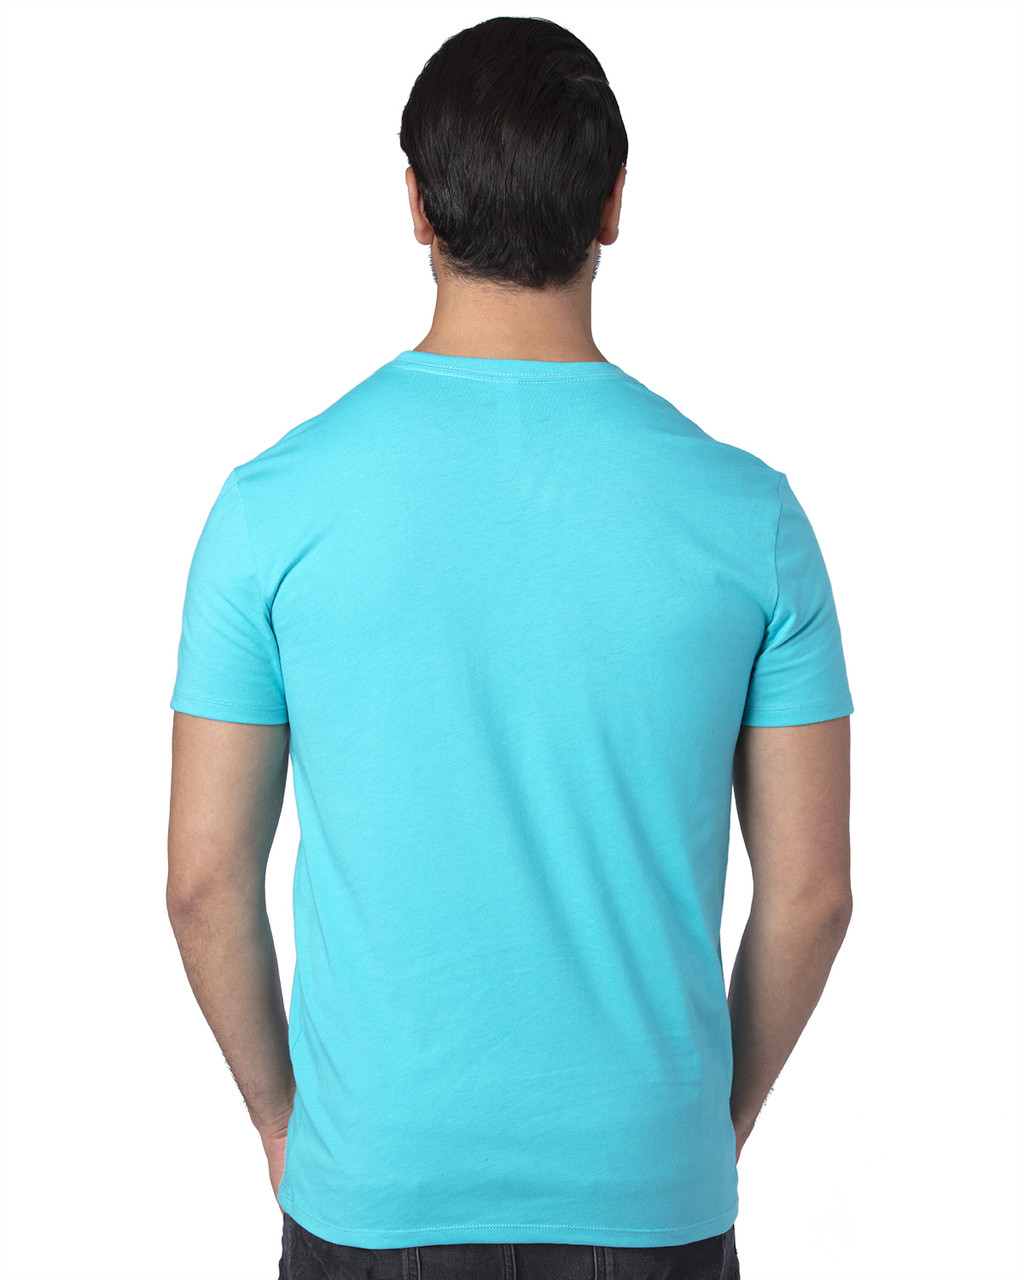 Pacific Blue - Back, 100A Threadfast Unisex Ultimate Short-Sleeve T-Shirt   BlankClothing.ca